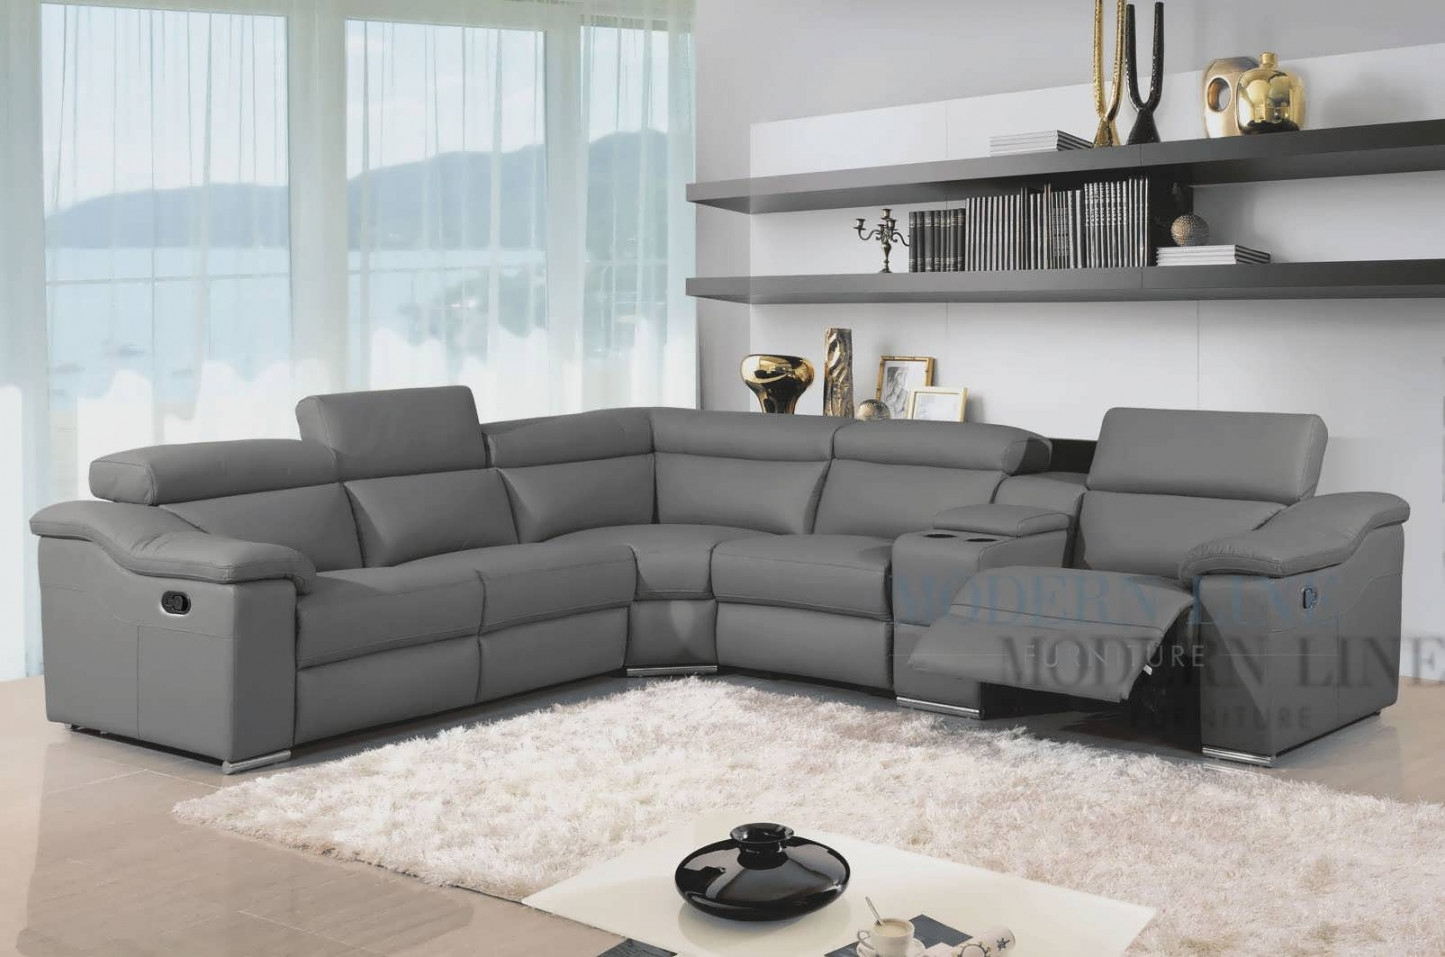 Sofa : Sectional Sofas With Recliners Leather Sectional Sofa   House Intended For Sectional Sofas With Recliners Leather (Image 9 of 10)